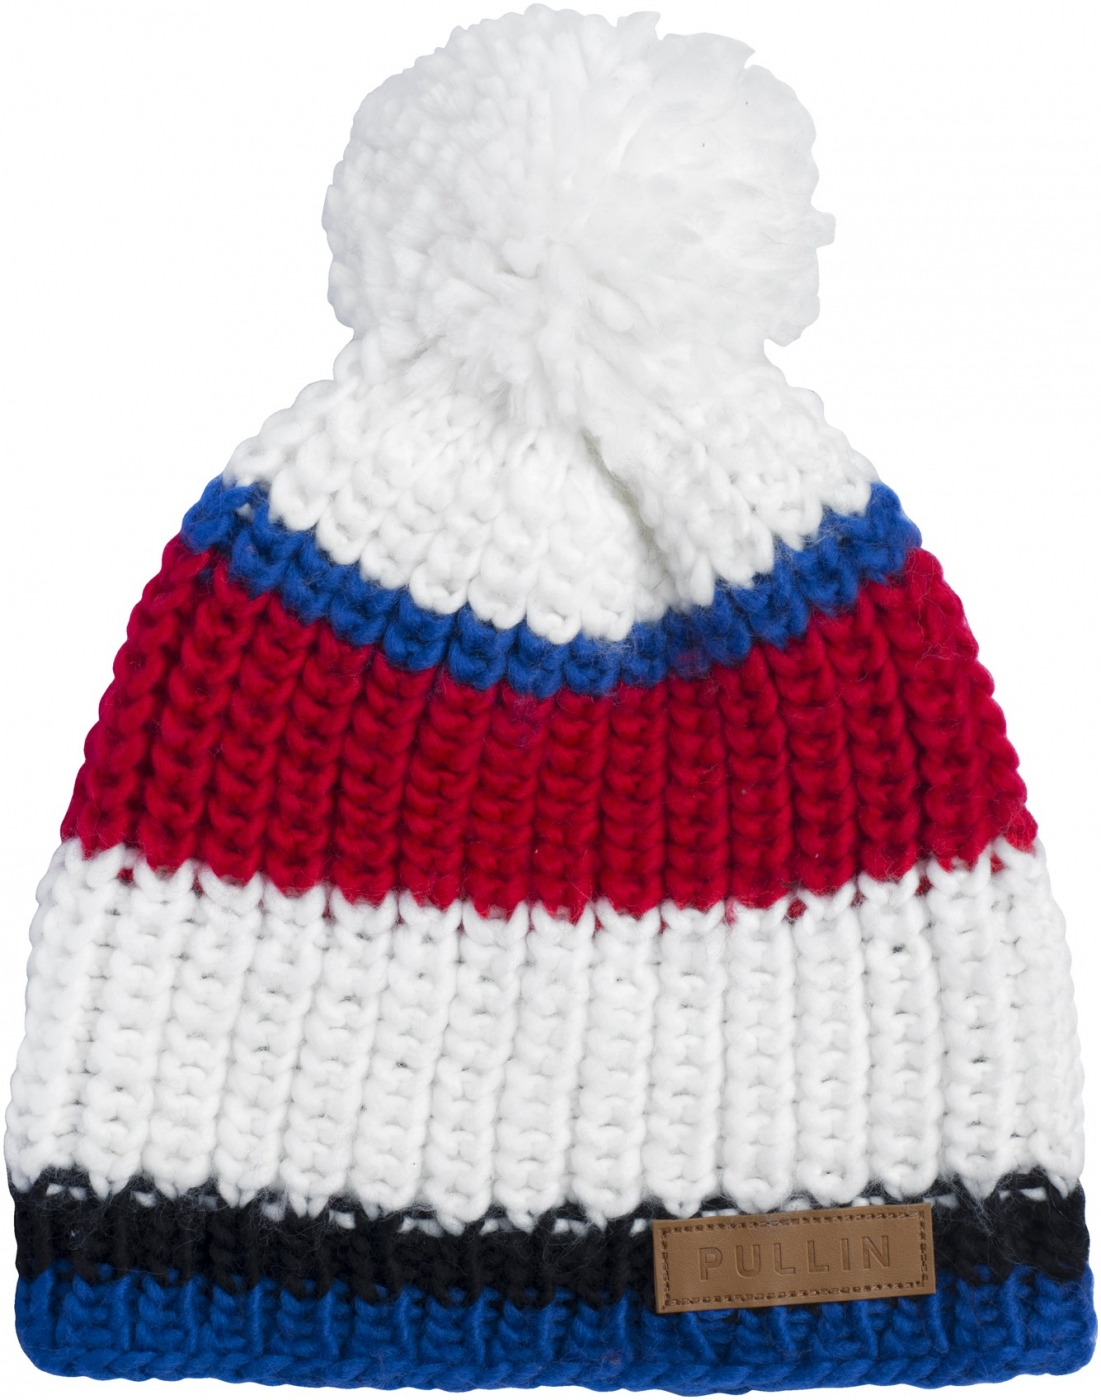 PULL-IN čepice ICE BEANIE 17 Frenchy  eaafdf7a80